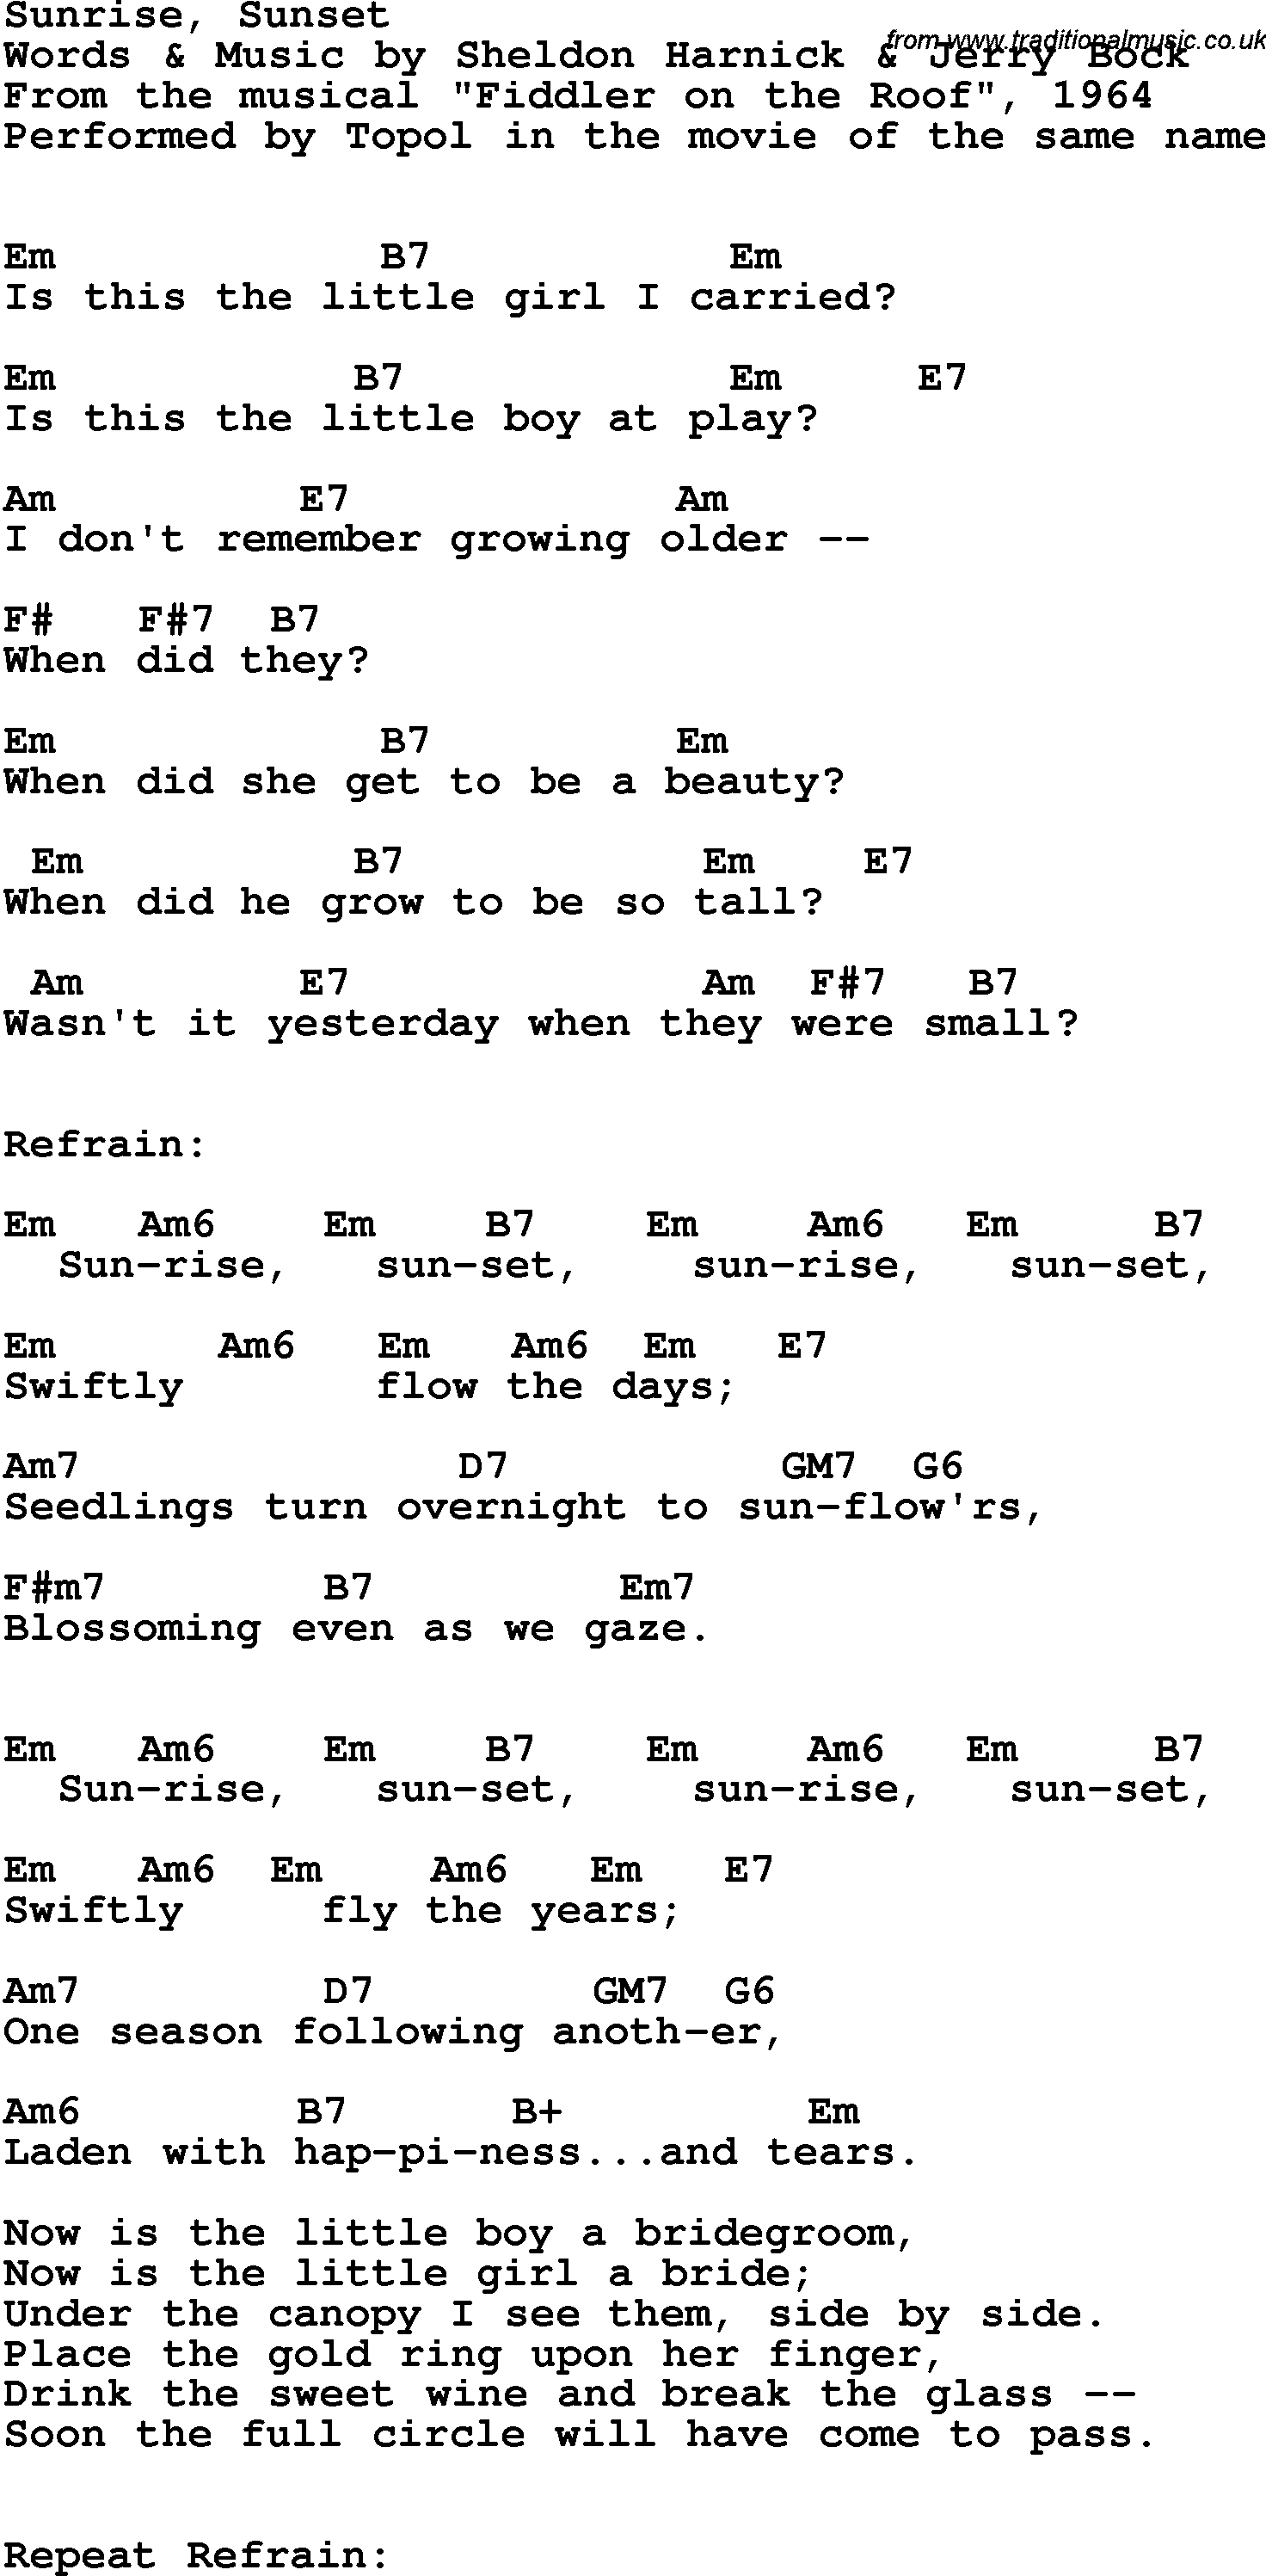 Song lyrics with guitar chords for sunrise sunset topol 1964 song lyrics with guitar chords for sunrise sunset topol 1964 nvjuhfo Image collections